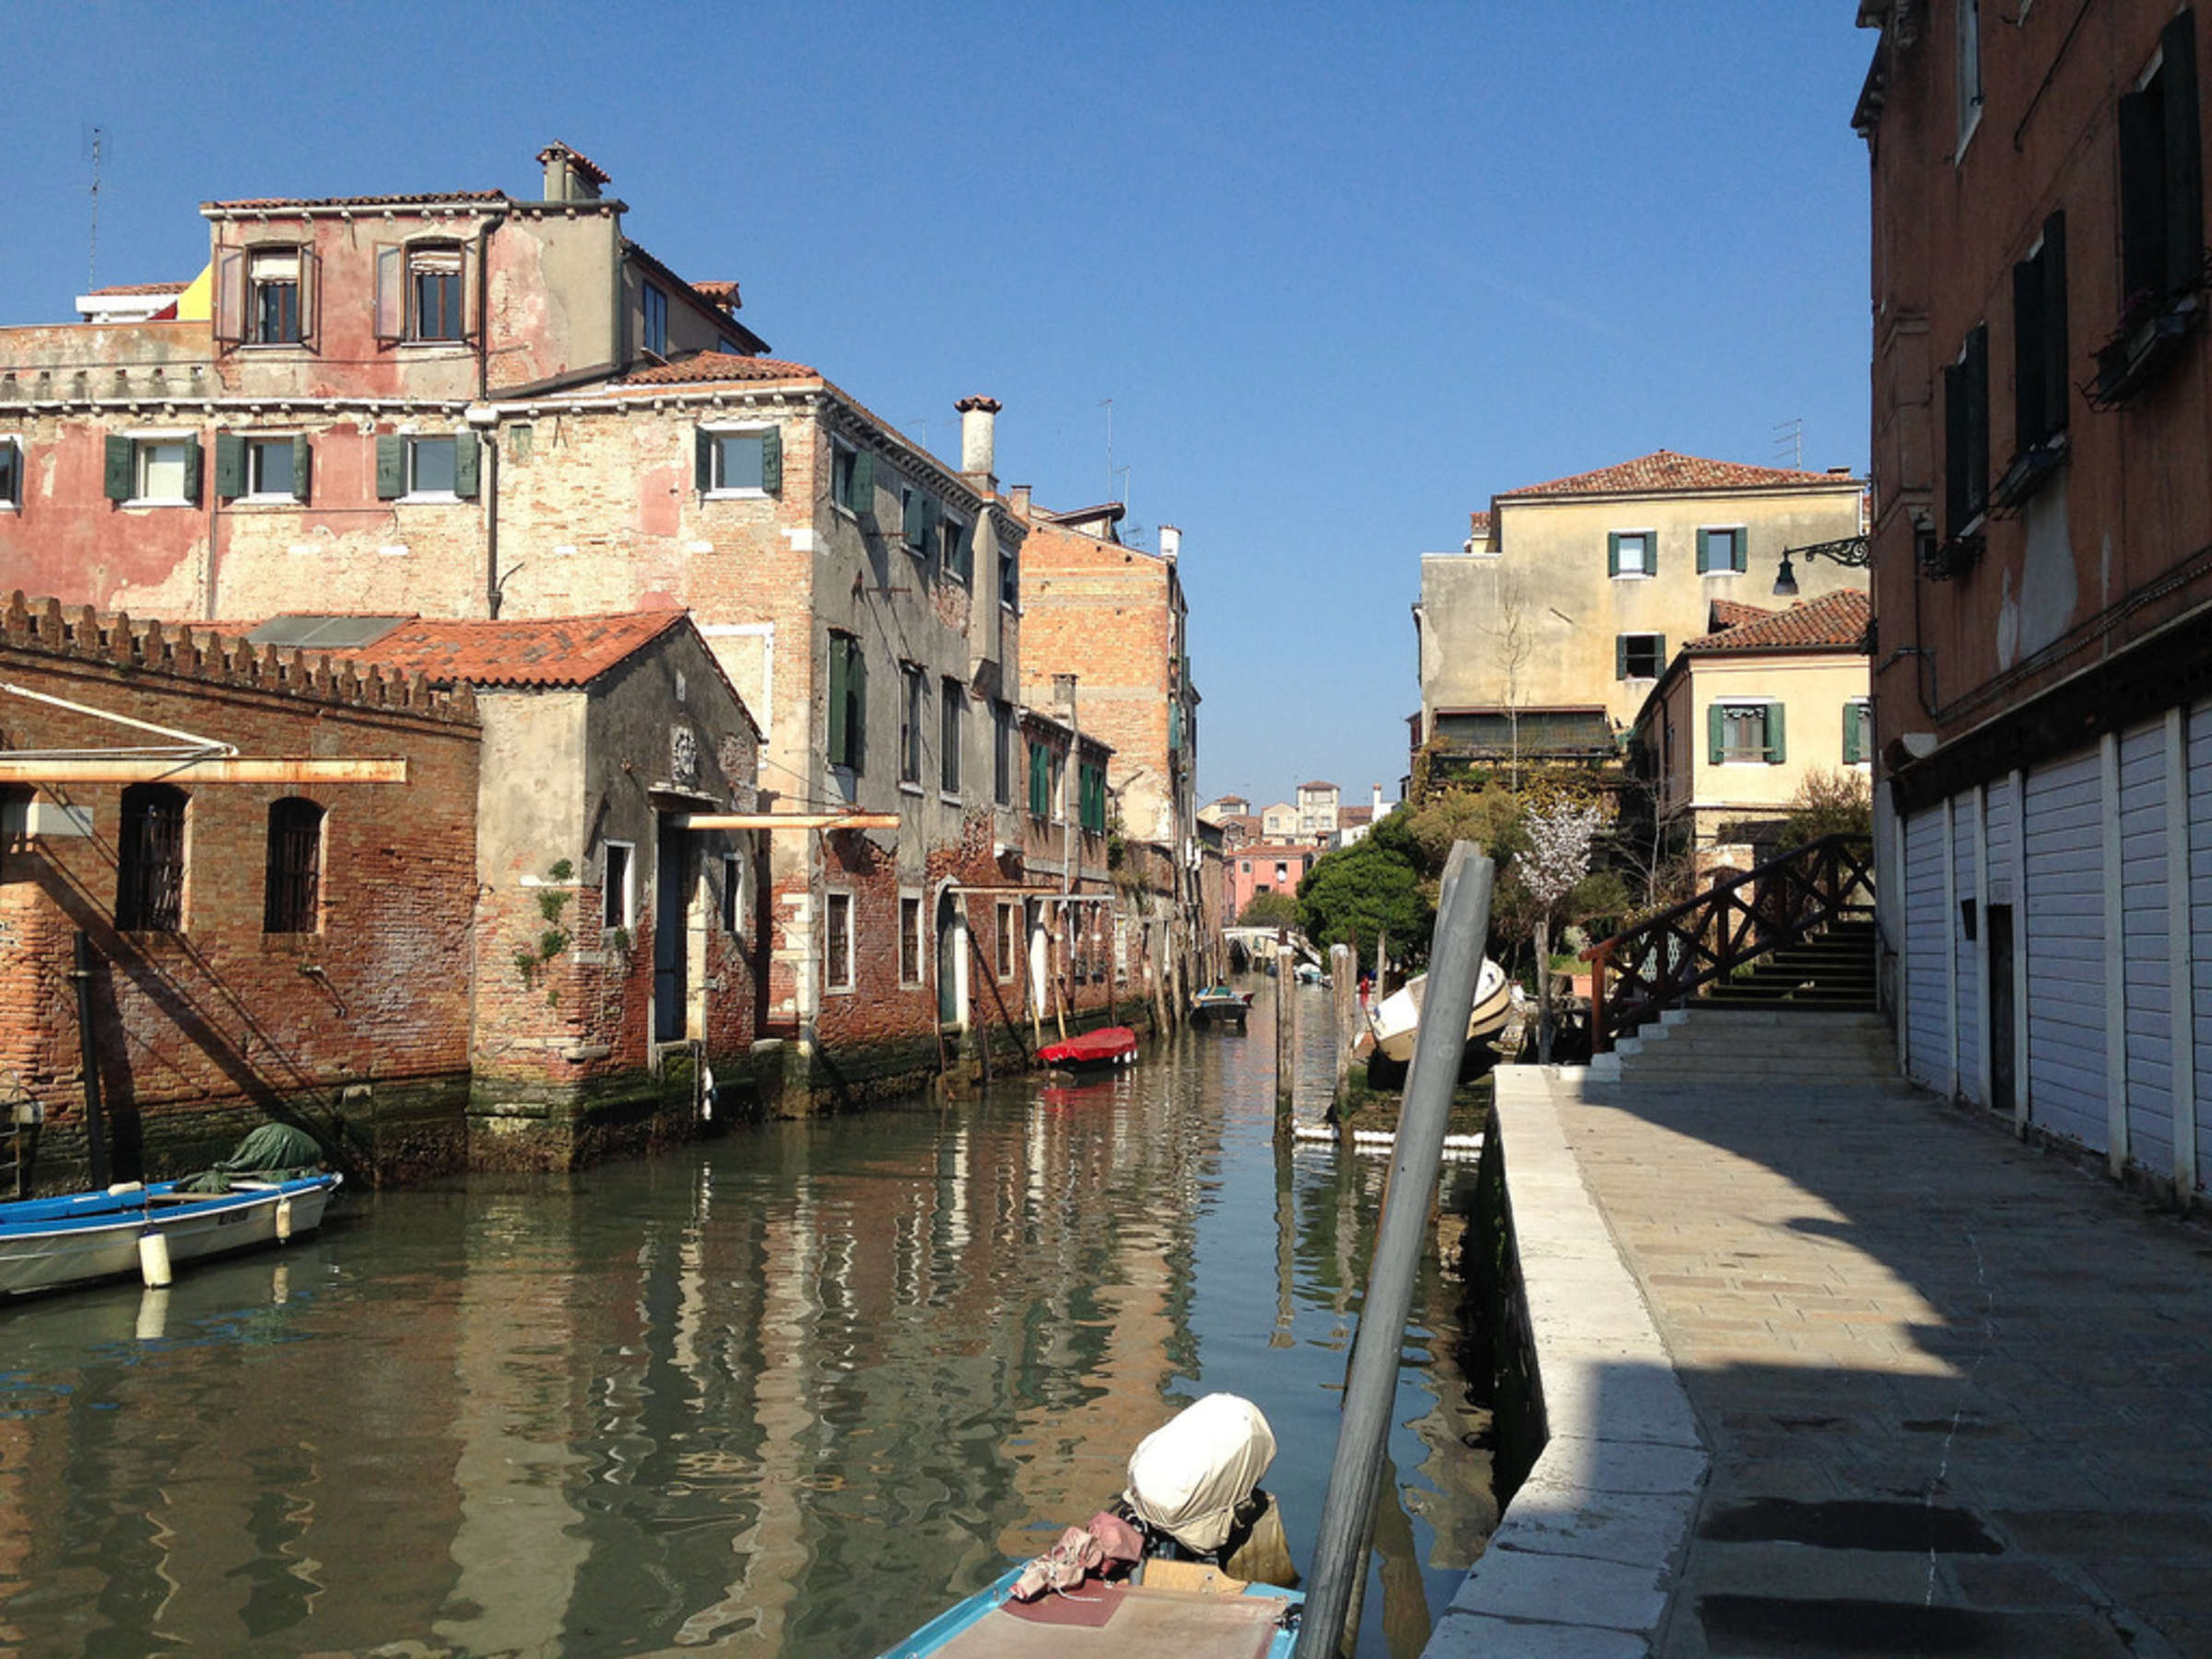 Cannaregio: The Neighborhood of Artists